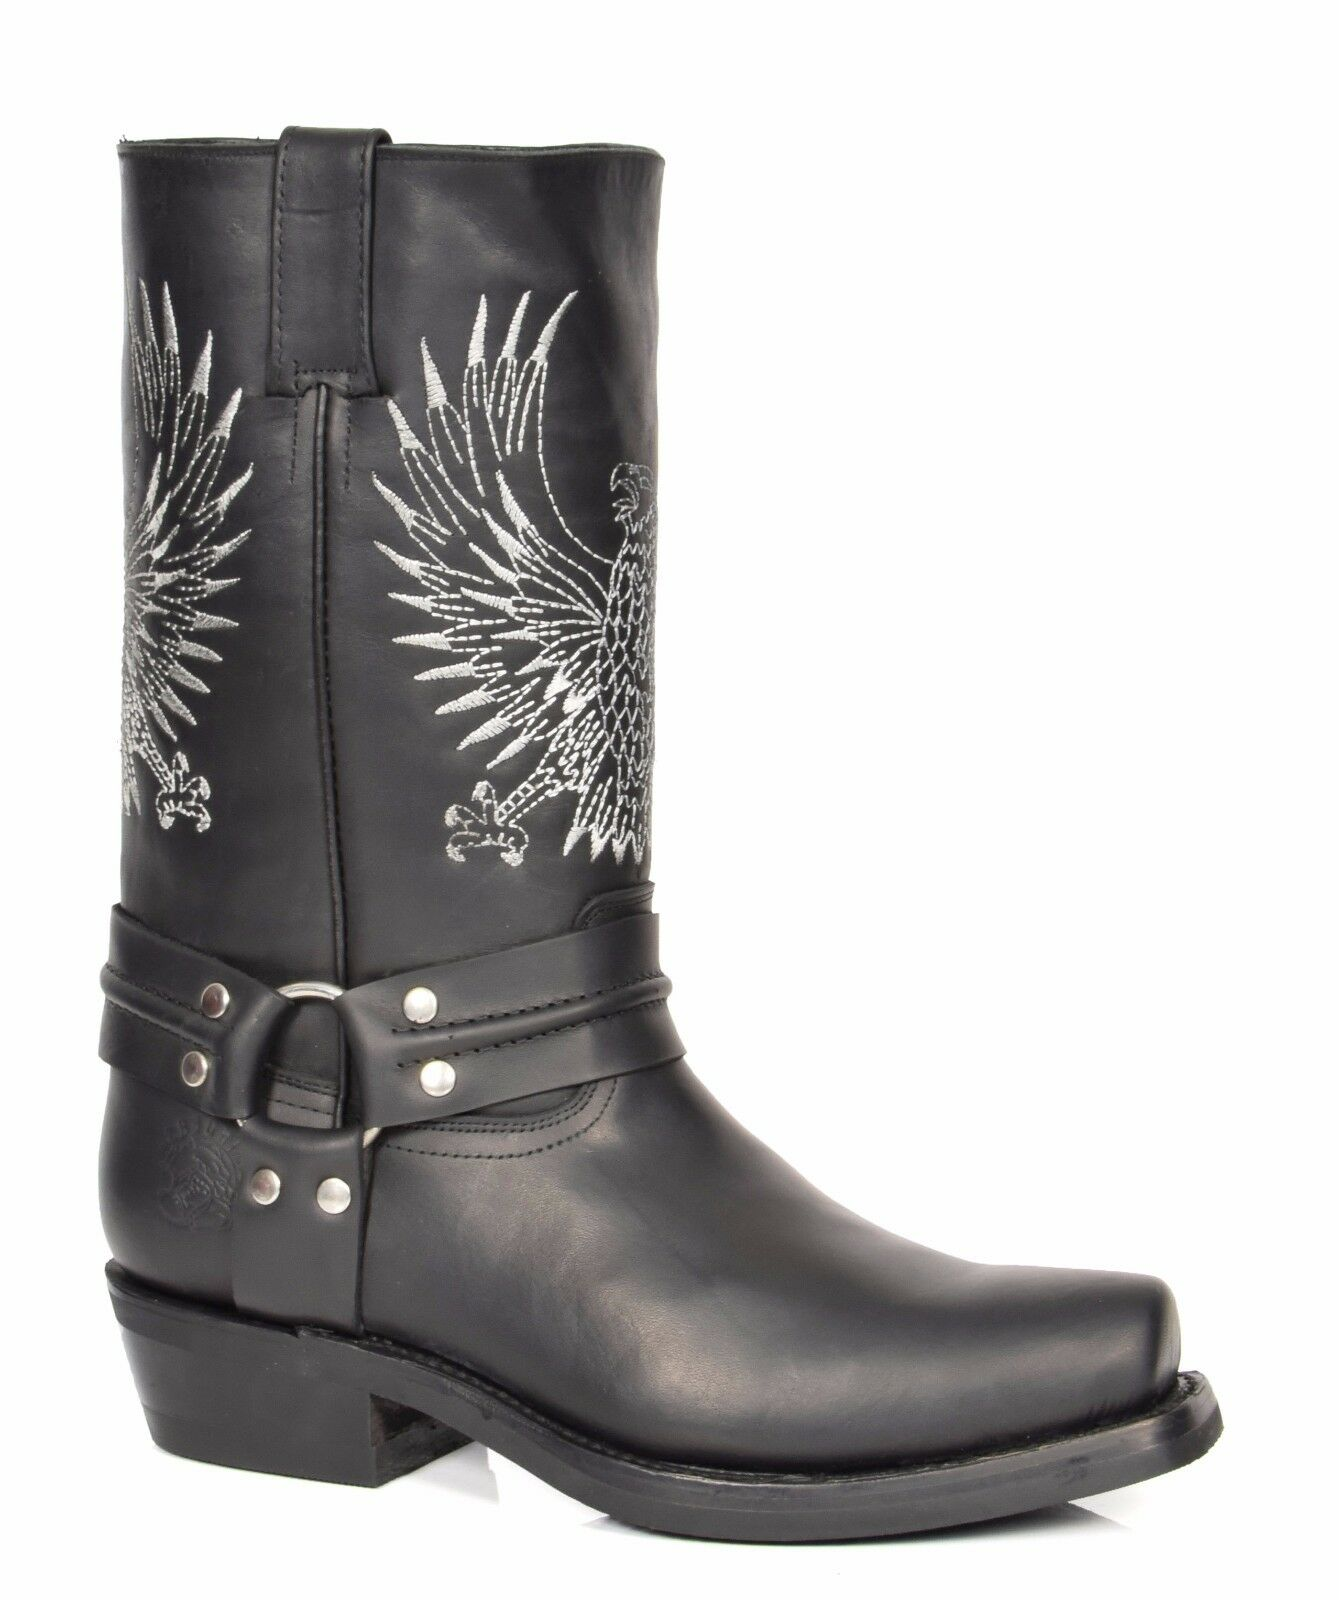 Leather Cowboy Boots Slip on Square Toe Calf Length Western Heels Black